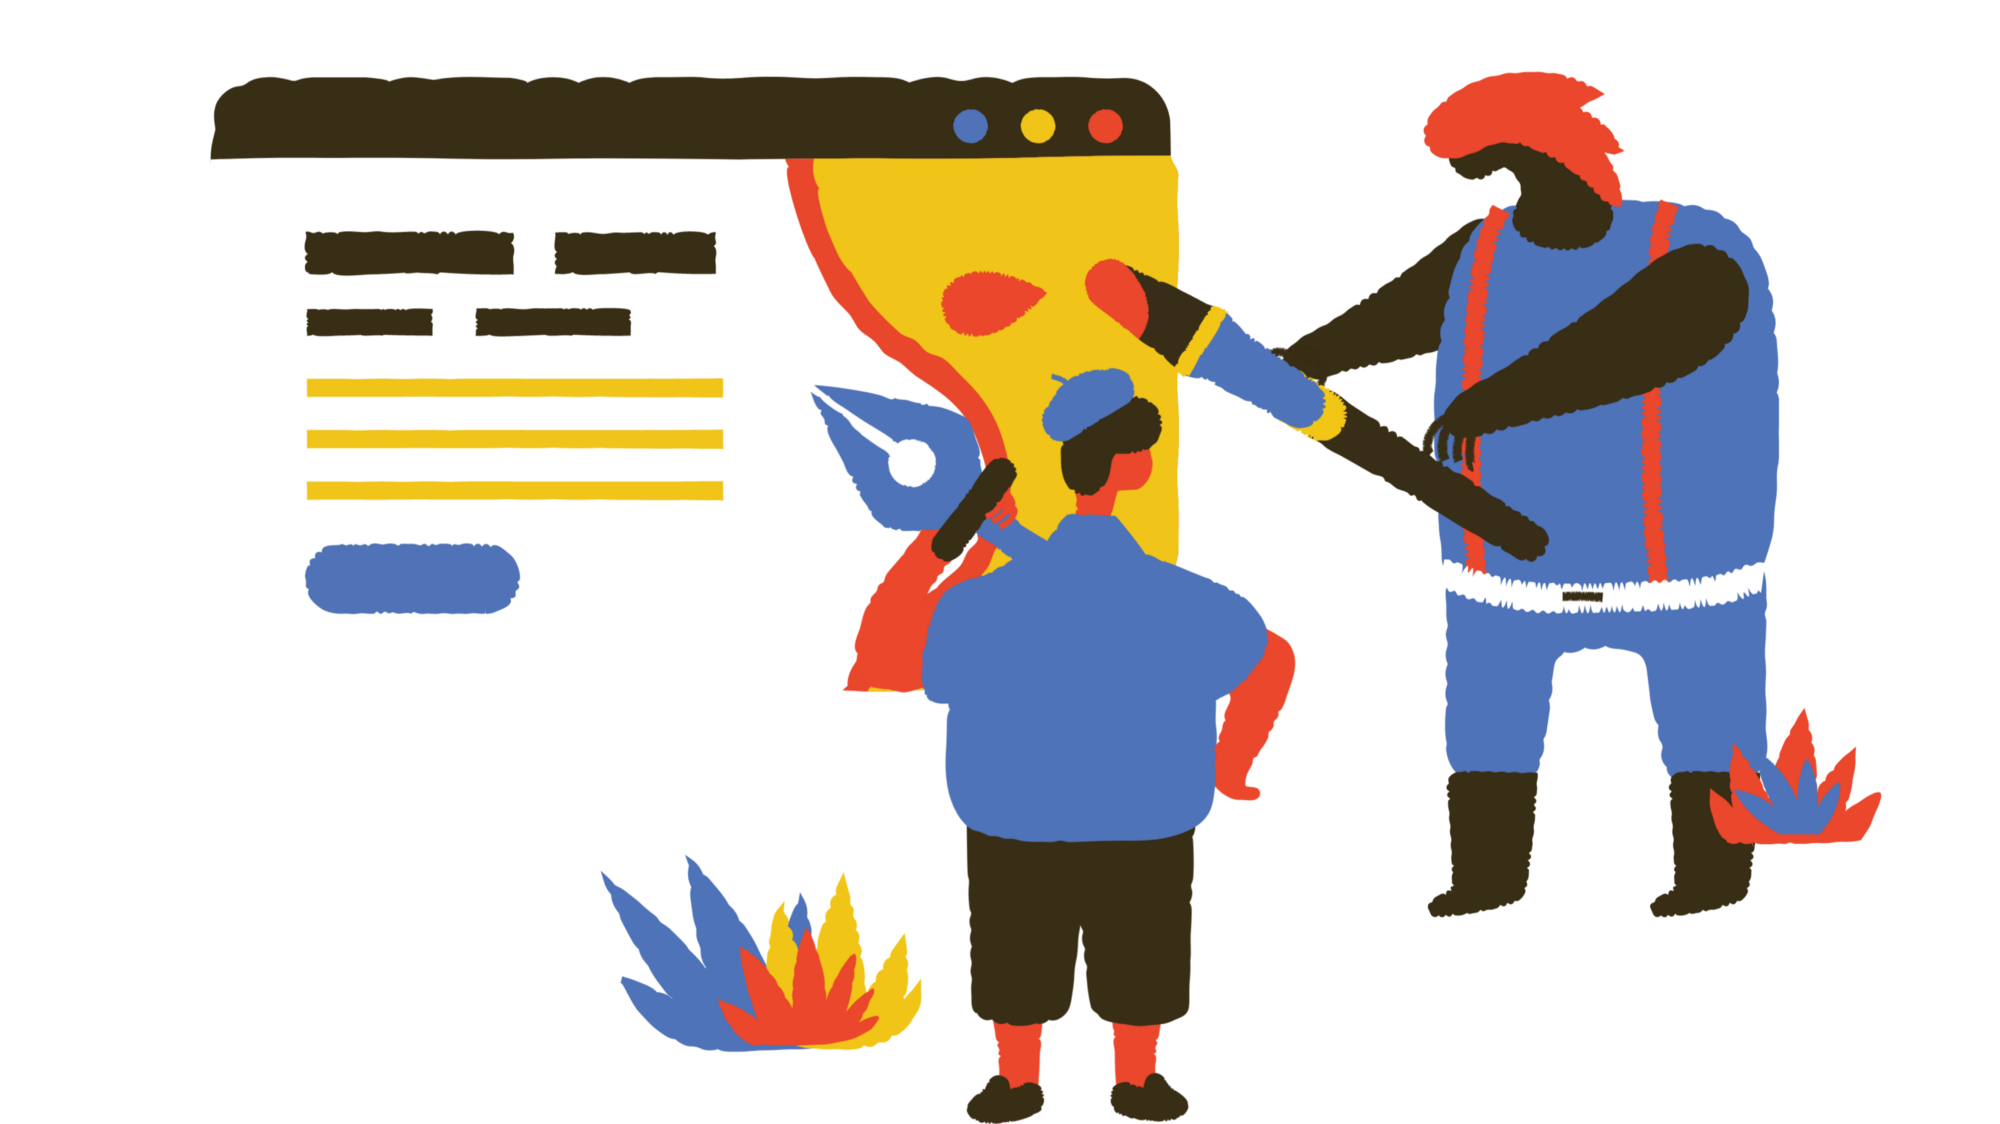 Testing a website (illustration from icons8.com)